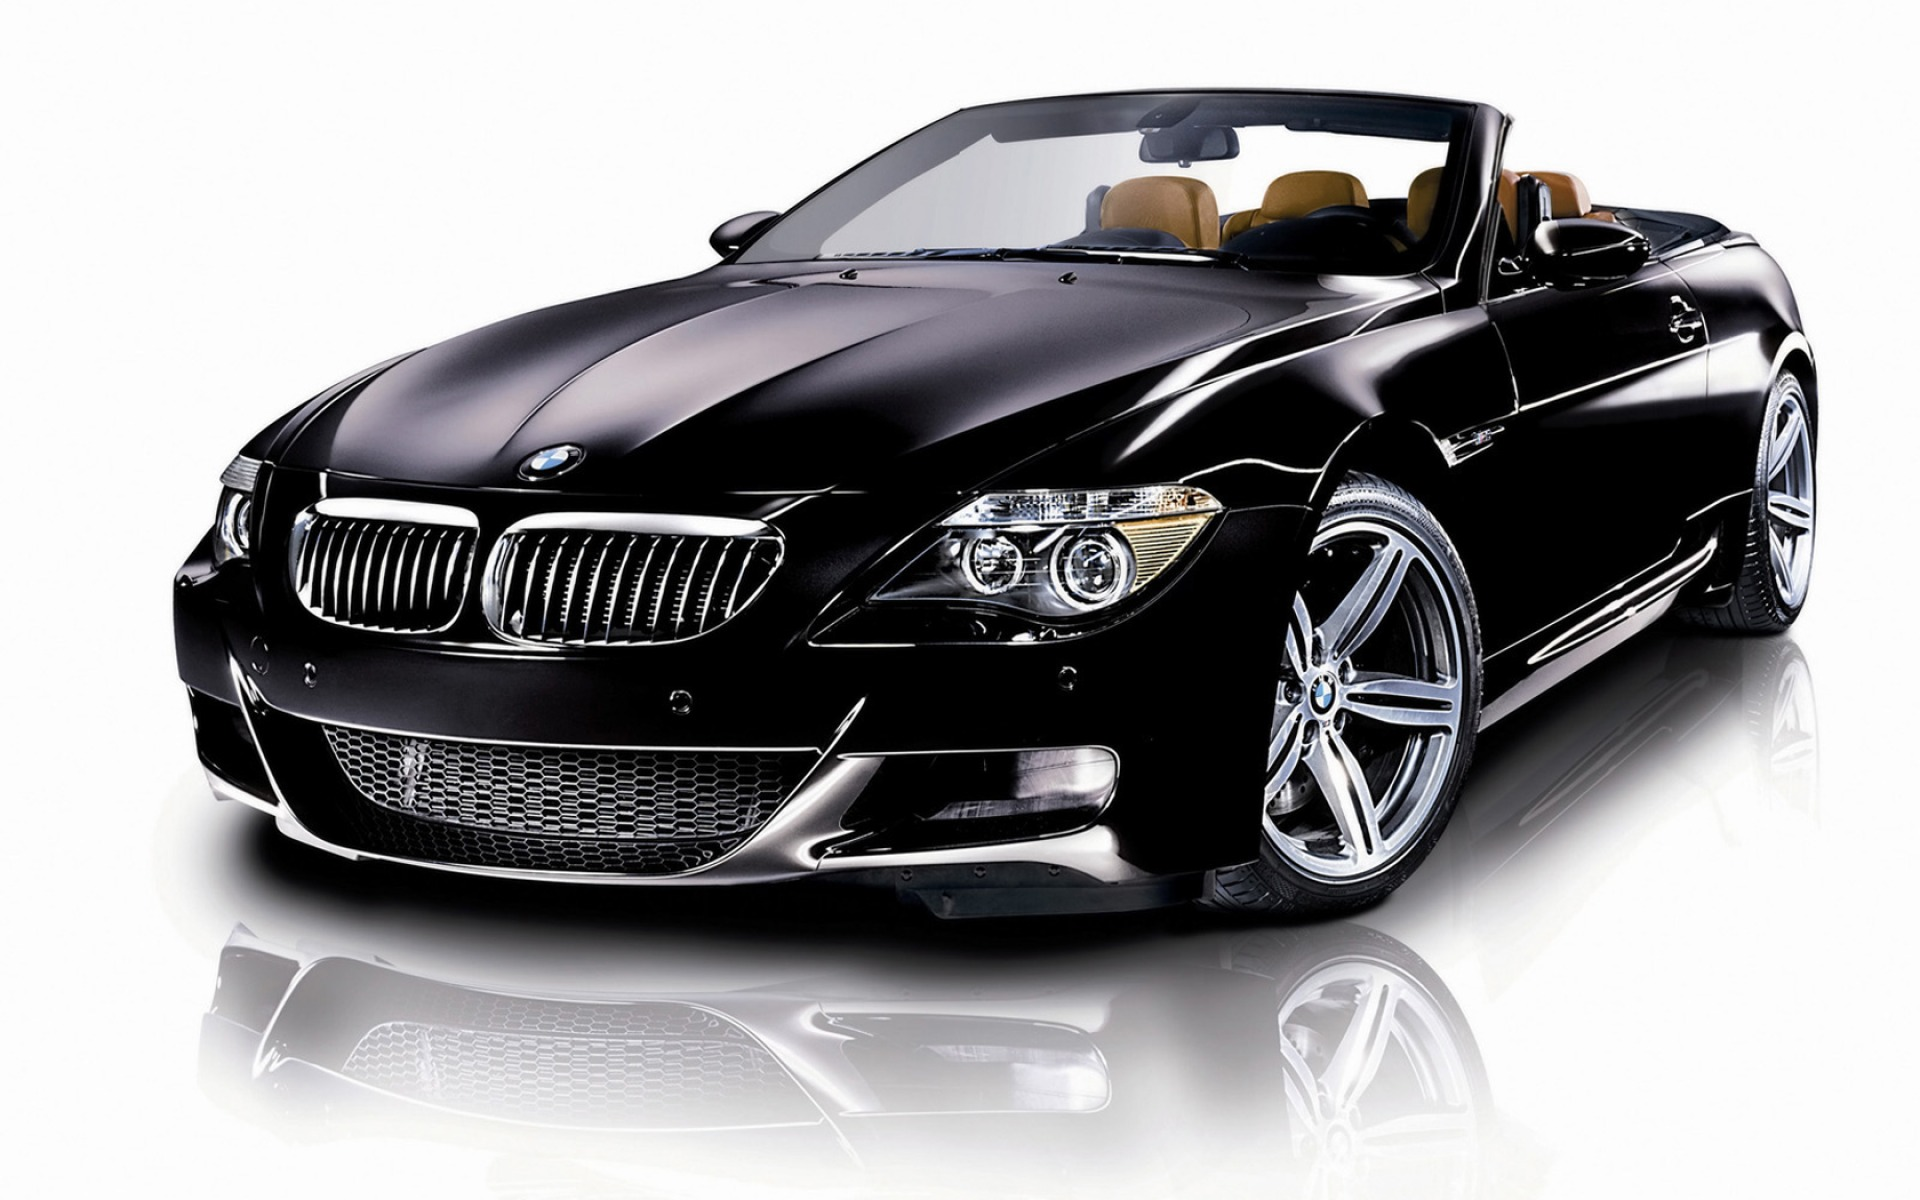 Ultrablogus  Pleasing Bmw Car Wallpaper Wallpapers For Free Download About   With Lovely Bmw M Convertible Wallpaper Bmw Cars With Astonishing Interior Ford Fusion Also Lancer Evolution Interior In Addition  Mustang Interior And  Chevelle Interior As Well As F Interior Accessories Additionally Gt Interior From Allfreedownloadcom With Ultrablogus  Lovely Bmw Car Wallpaper Wallpapers For Free Download About   With Astonishing Bmw M Convertible Wallpaper Bmw Cars And Pleasing Interior Ford Fusion Also Lancer Evolution Interior In Addition  Mustang Interior From Allfreedownloadcom